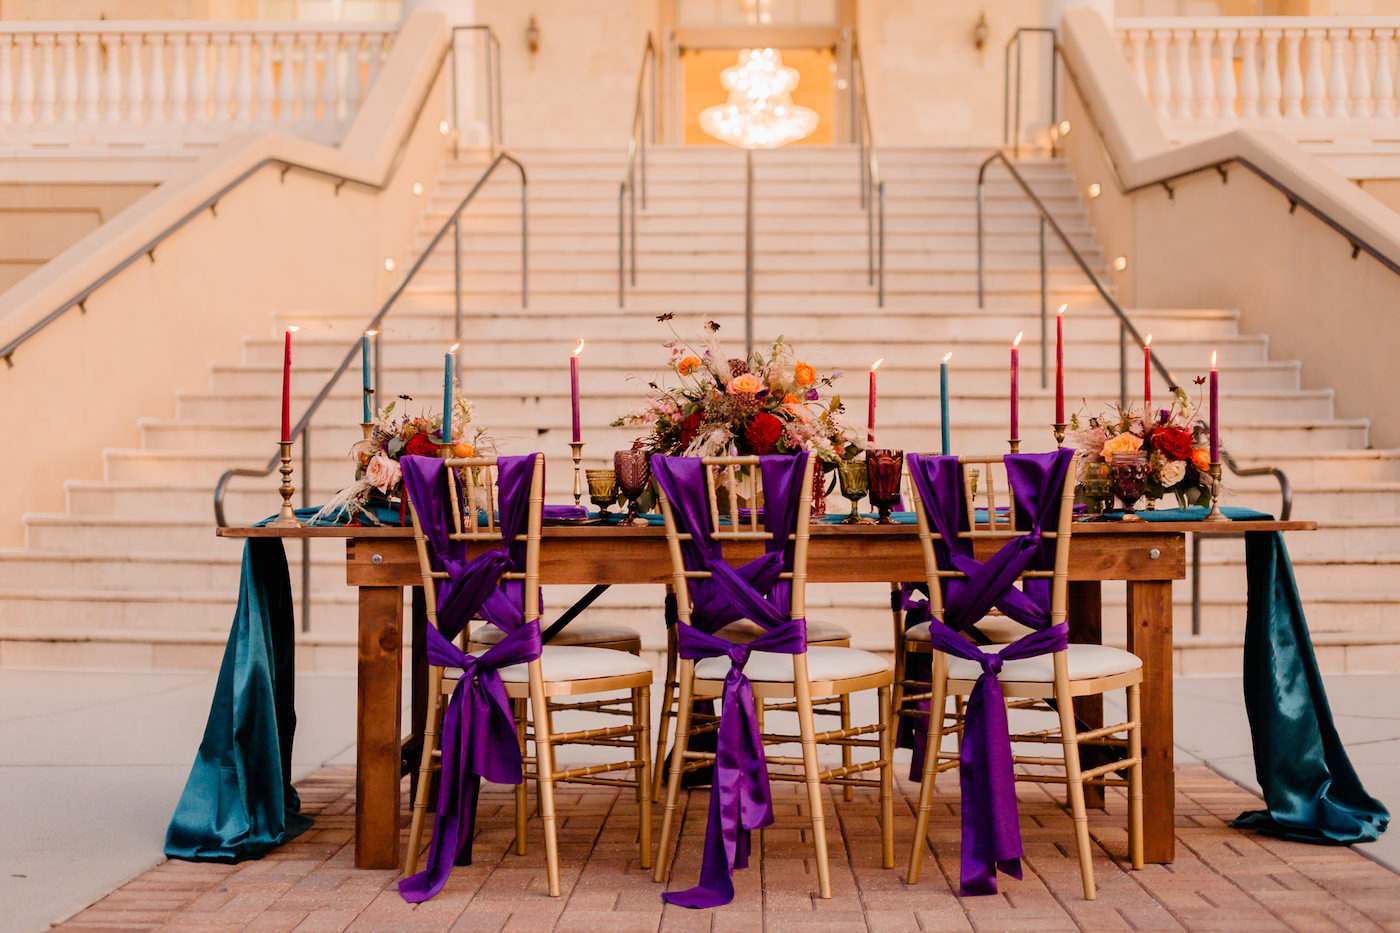 Boho Glam Wedding Reception Table with Orange Pink and Red Floral Arrangement Centerpiece with Pampas Grass | Tampa Wedding Florist Monarch Events and Designs | Wood Farm Table with Teal Turquoise Runner and Colorful Taper Candles and Purple Sashes on Gold Chiavari Chairs | Tampa Wedding Venue The Regent Grand Staircase and Columns